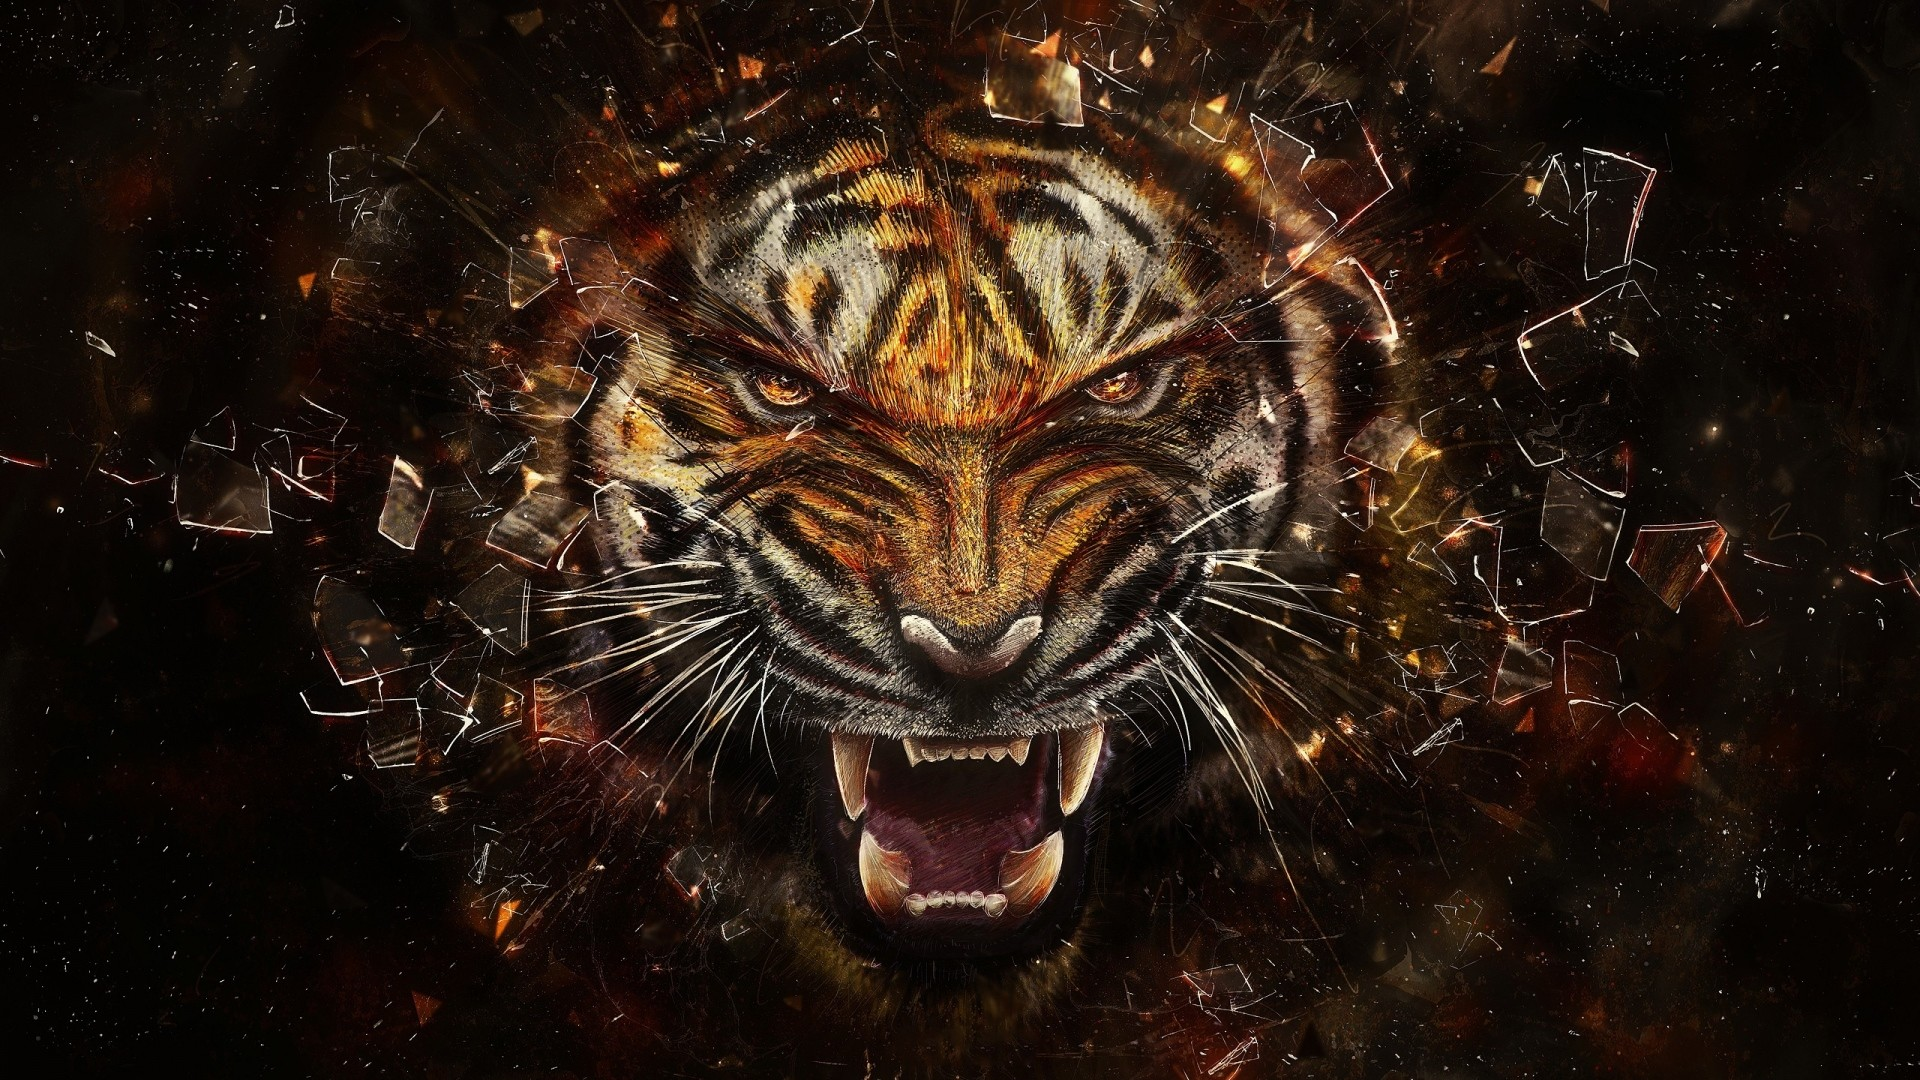 … Background Full HD 1080p. Wallpaper tiger, glass, shards,  aggression, teeth